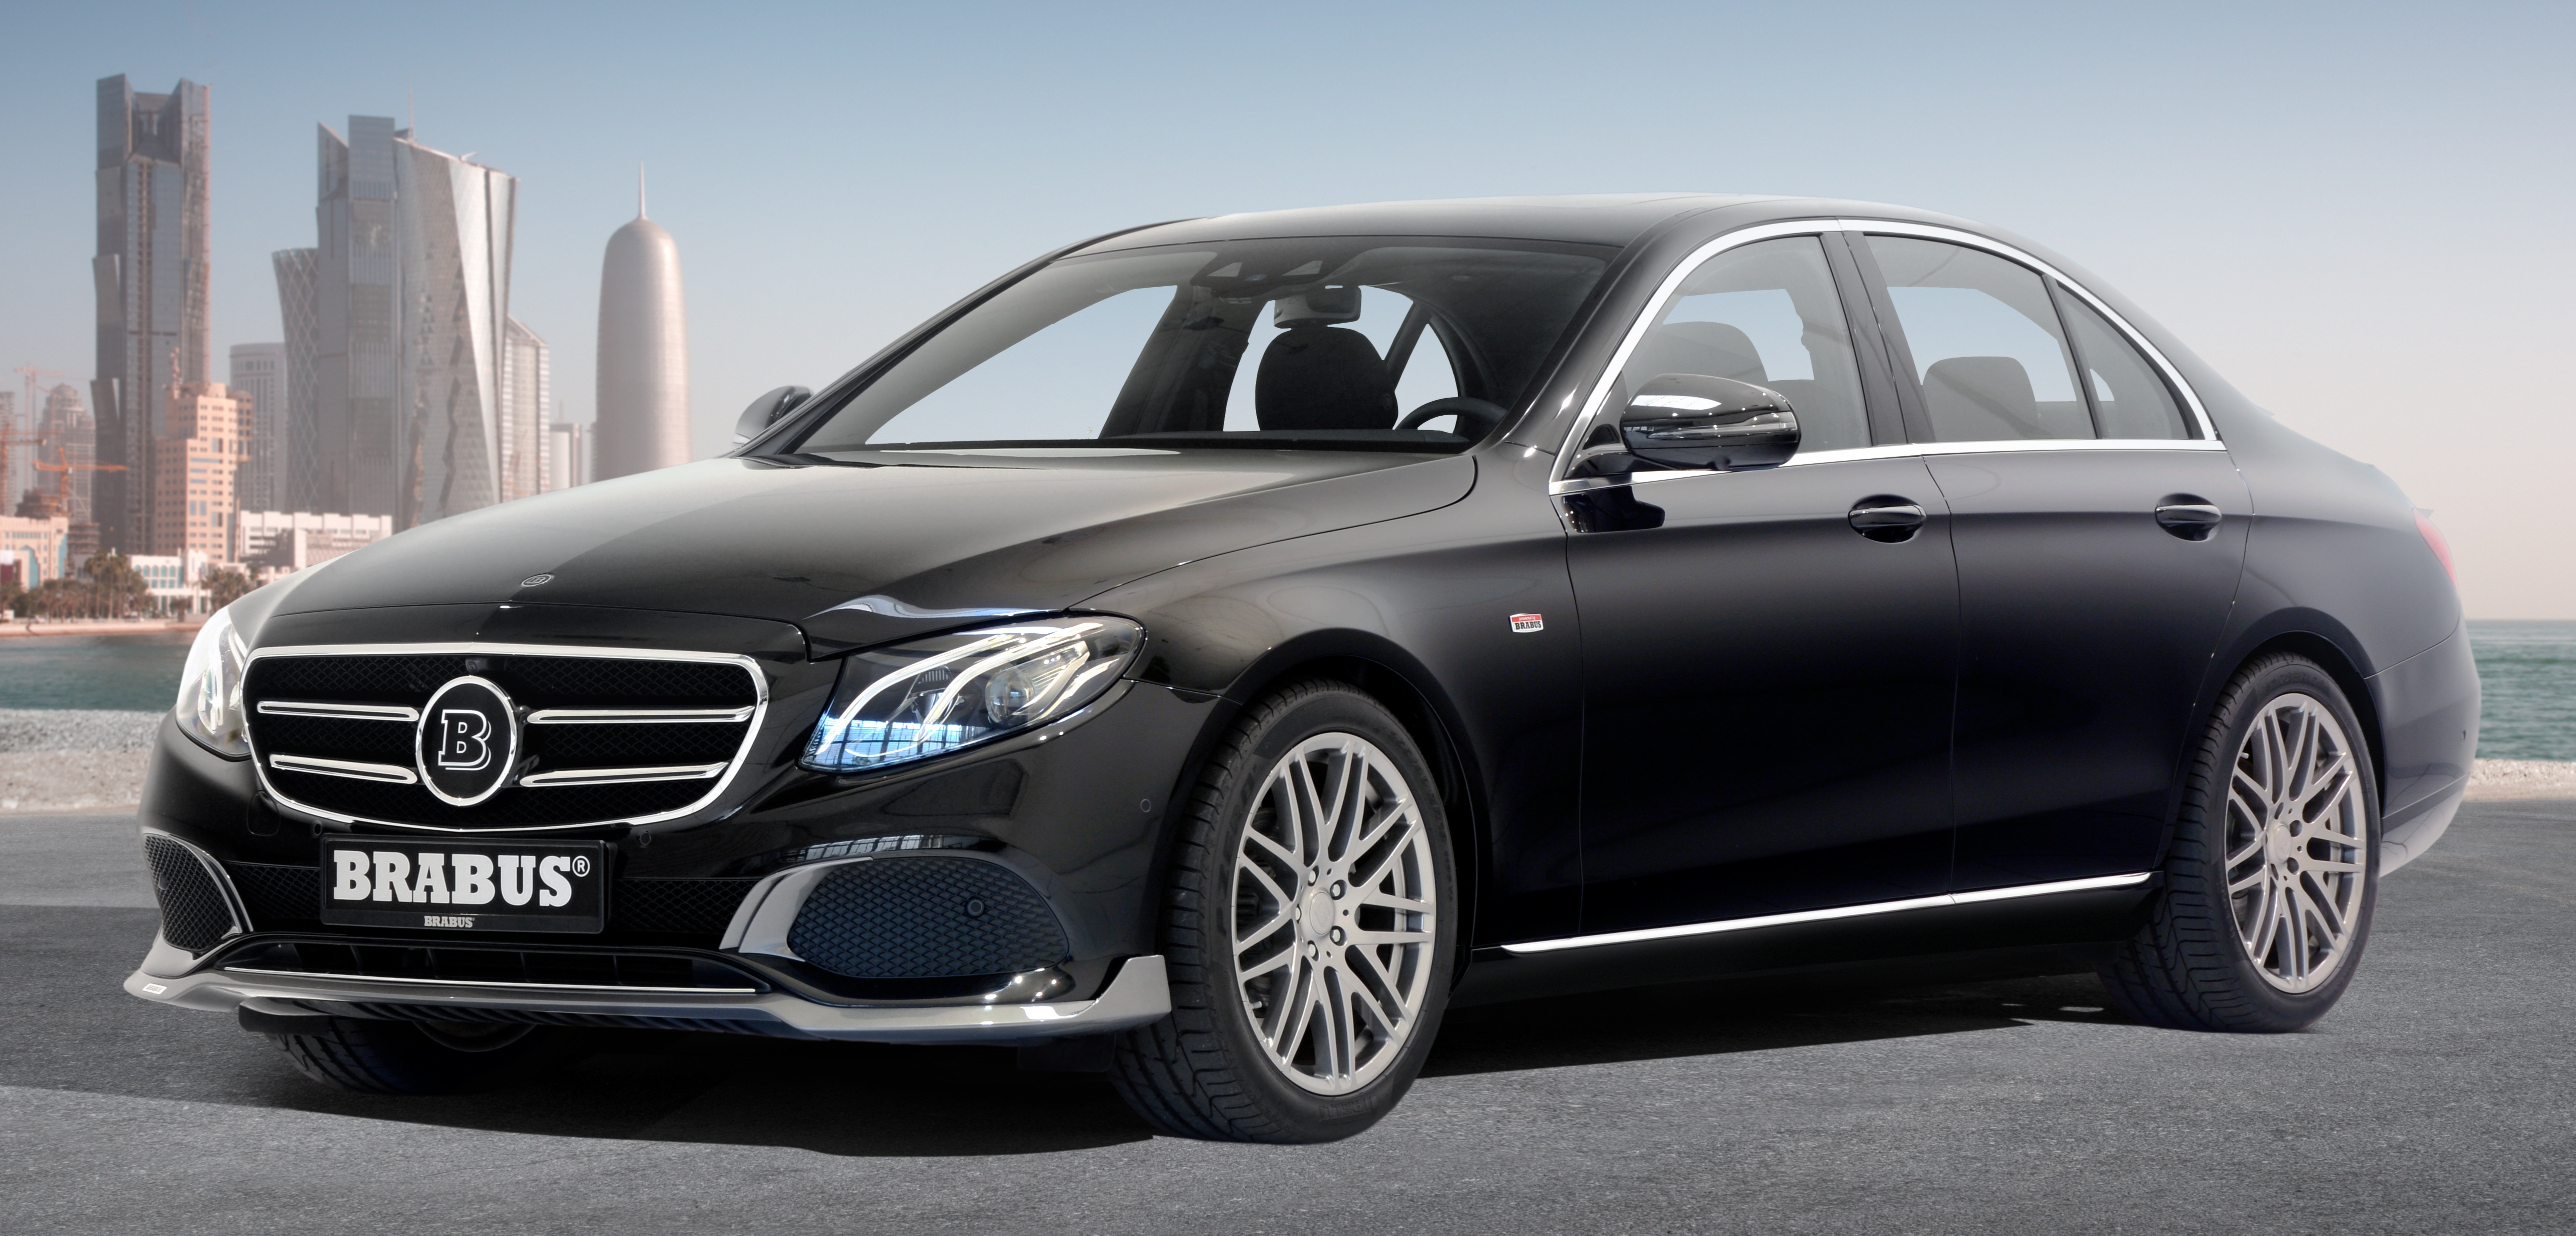 brabus bodykit tuning for the w213 mercedes e class paul. Black Bedroom Furniture Sets. Home Design Ideas